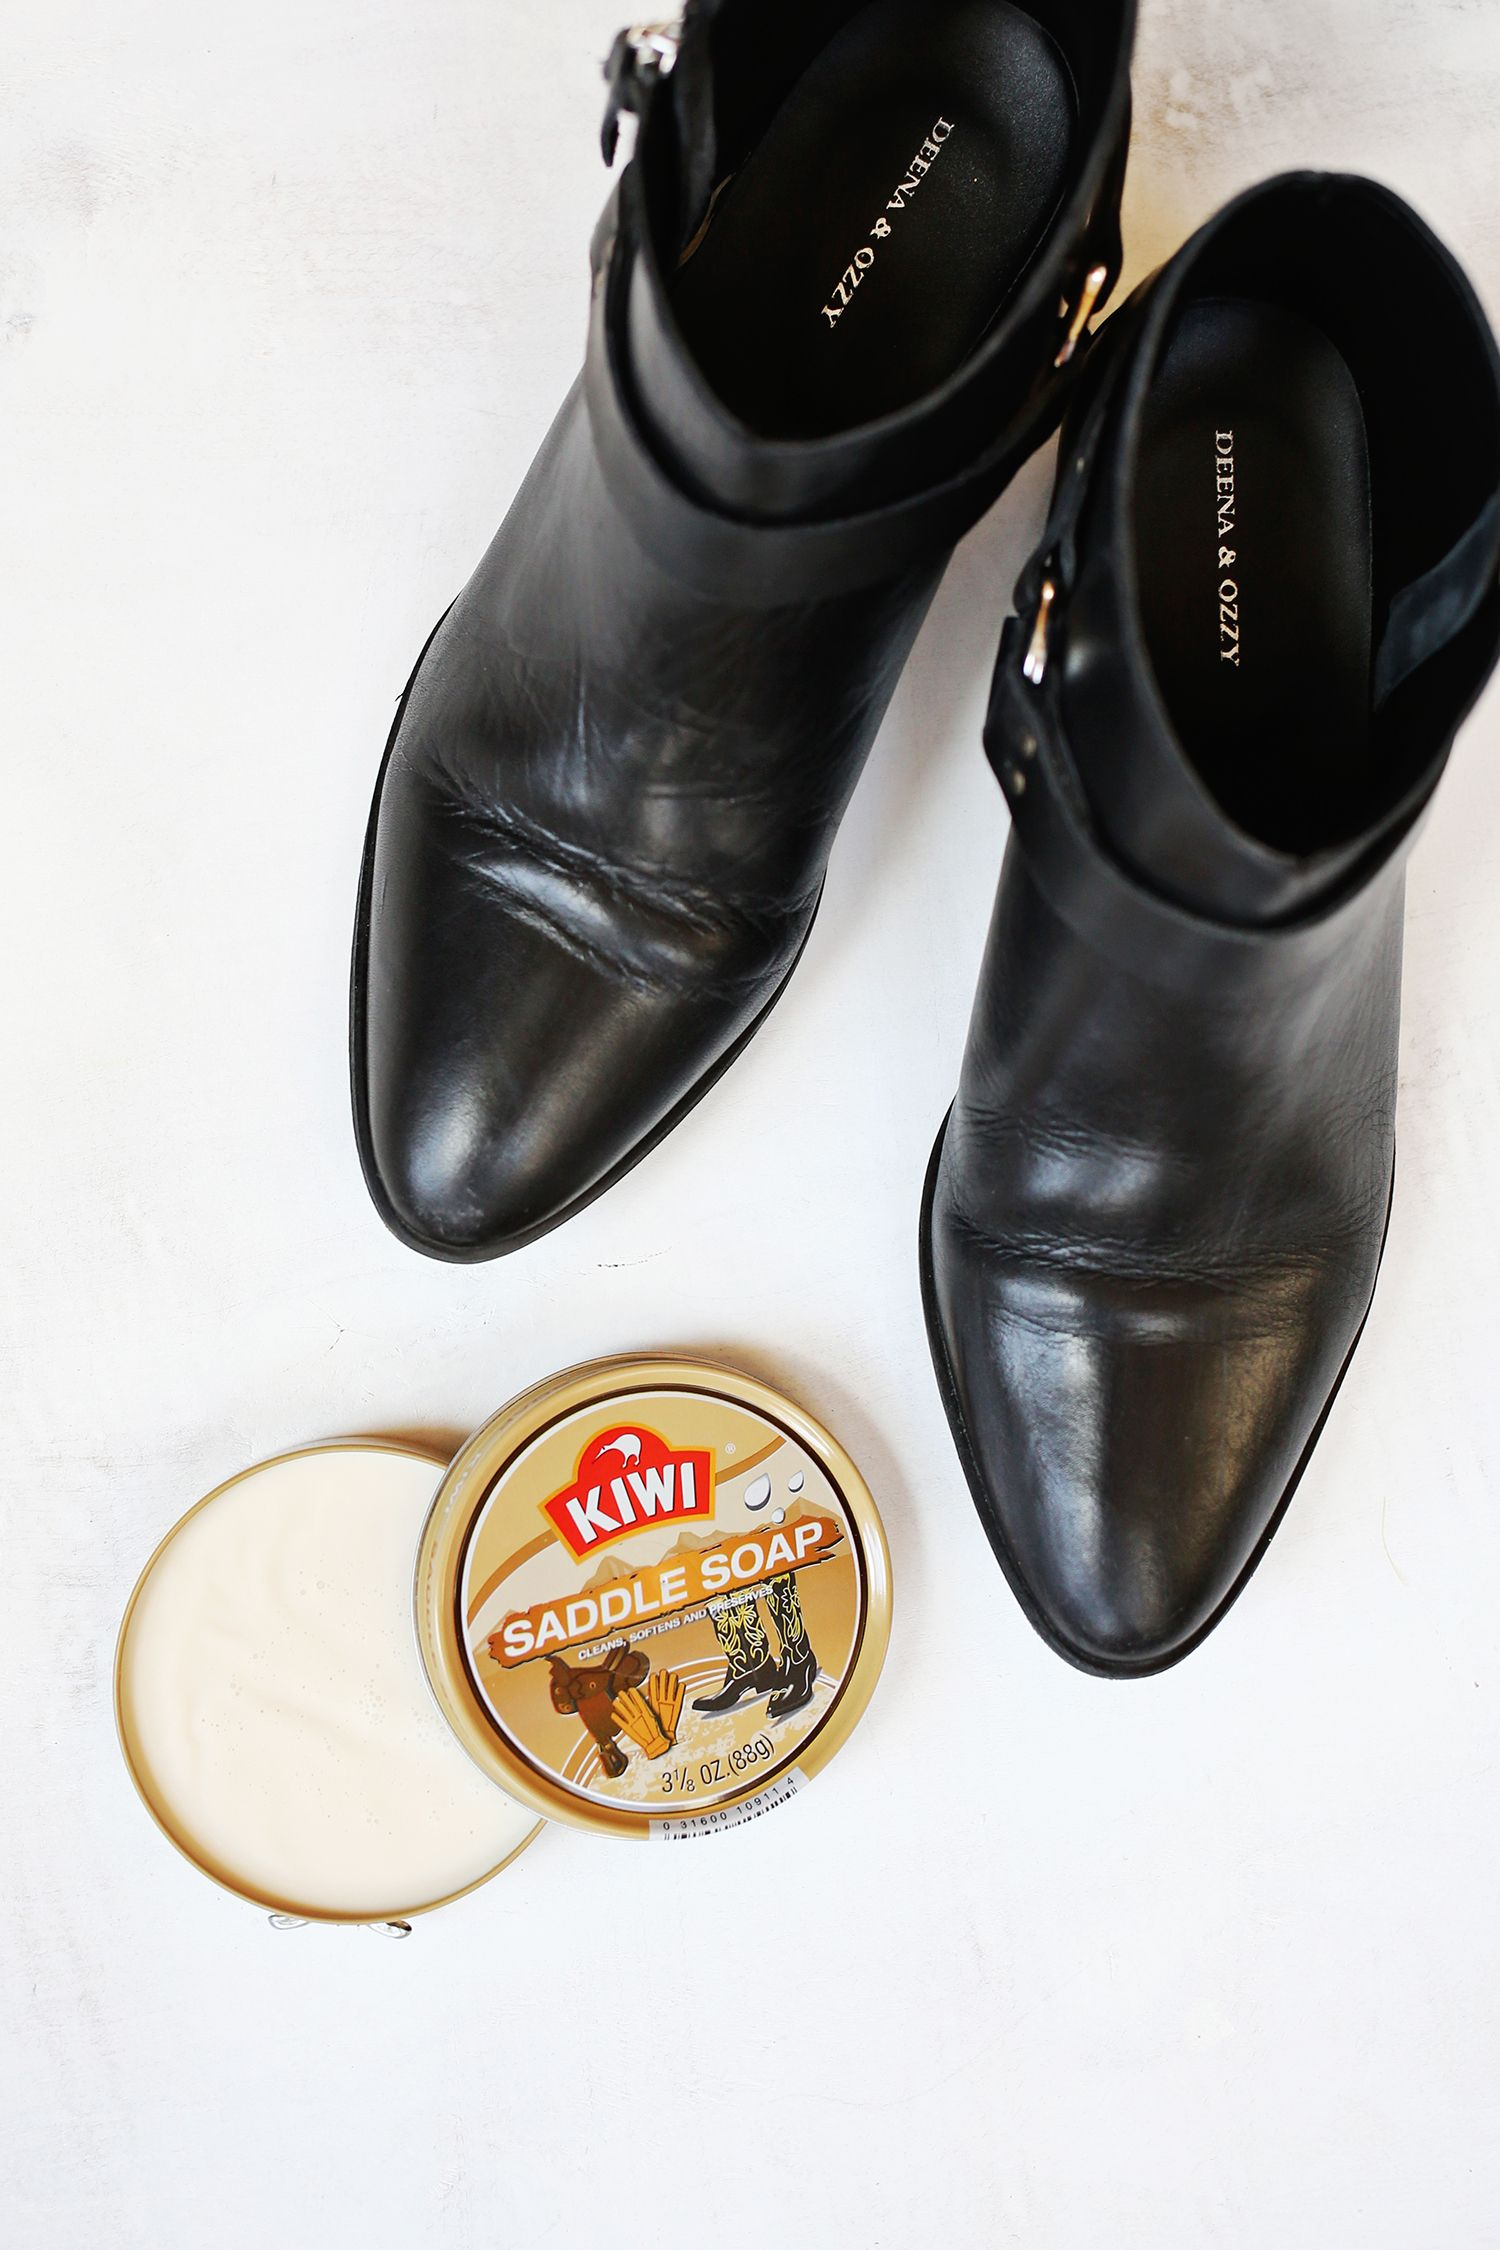 How To Clean and Care For Your Leather Boots in Winter